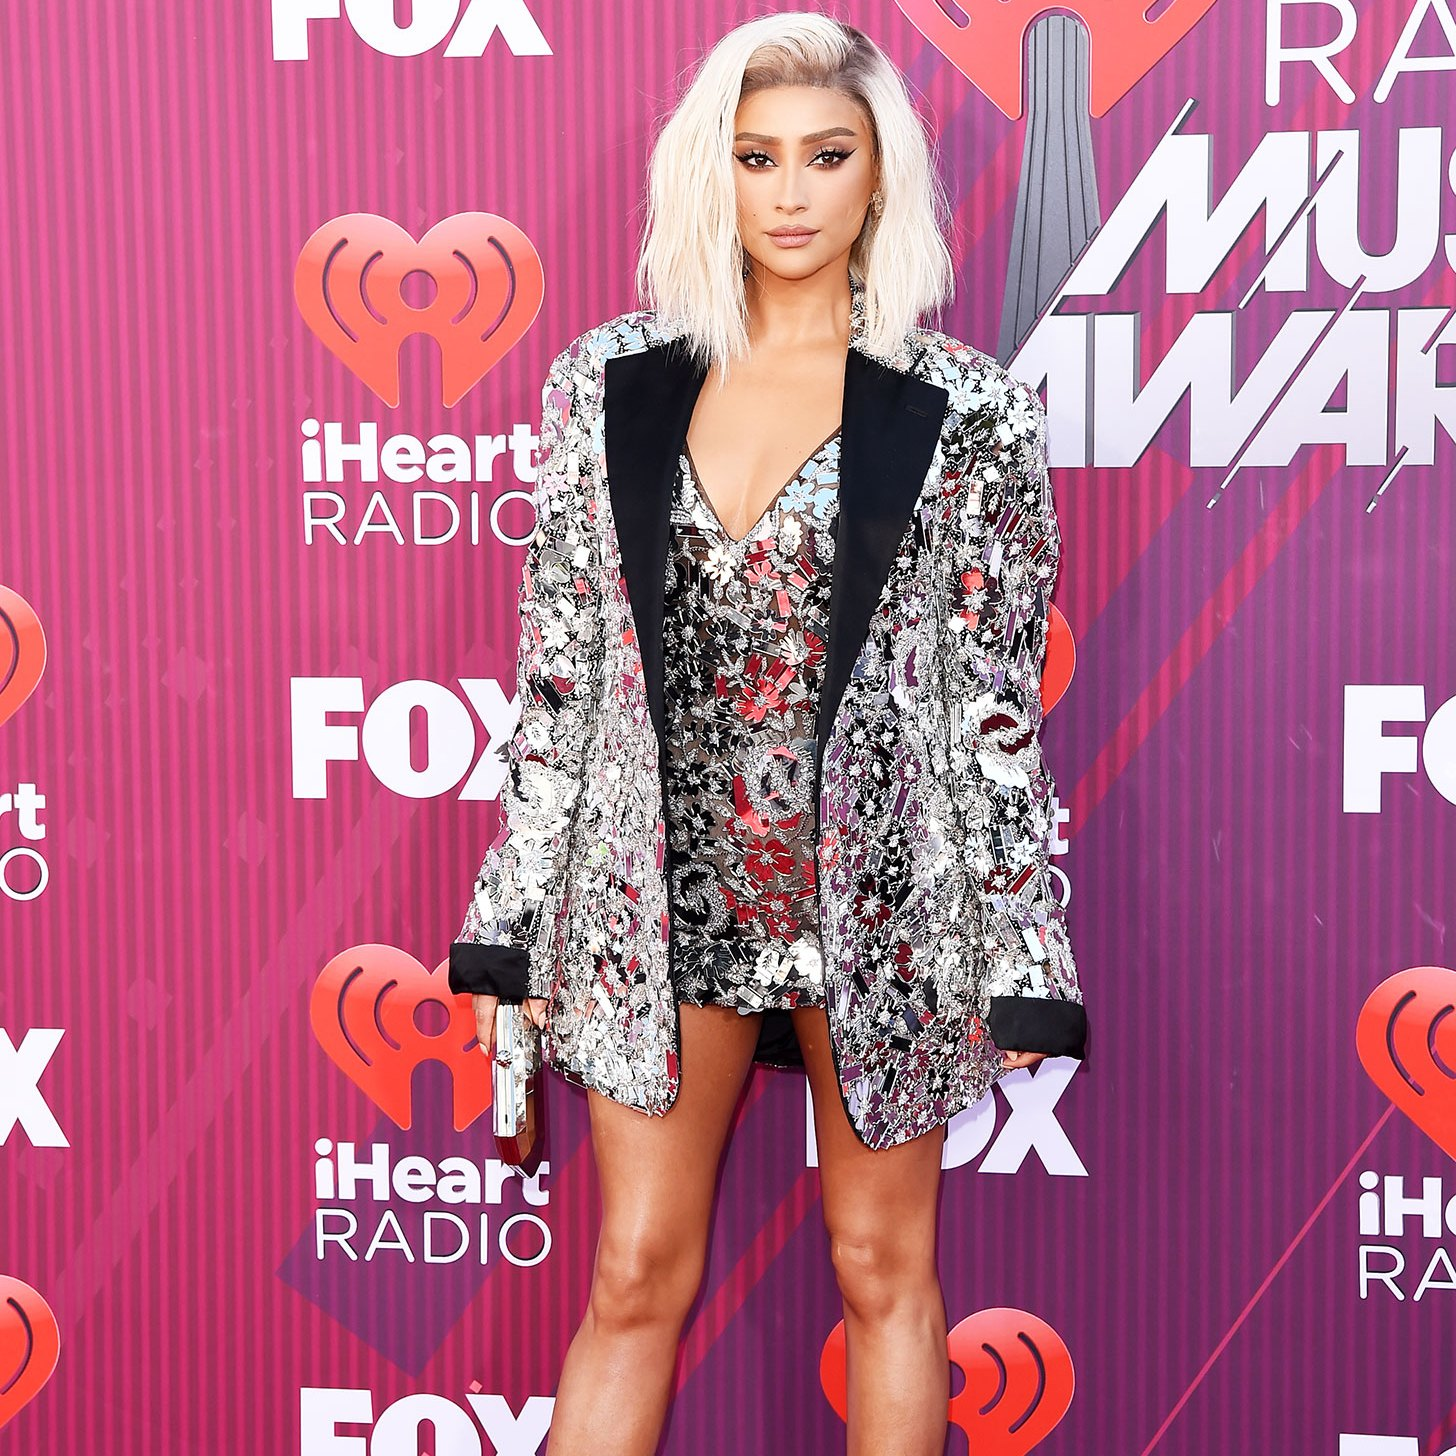 Shay Mitchell Embraces the Pantsless Trend at the iHeartRadio Awards